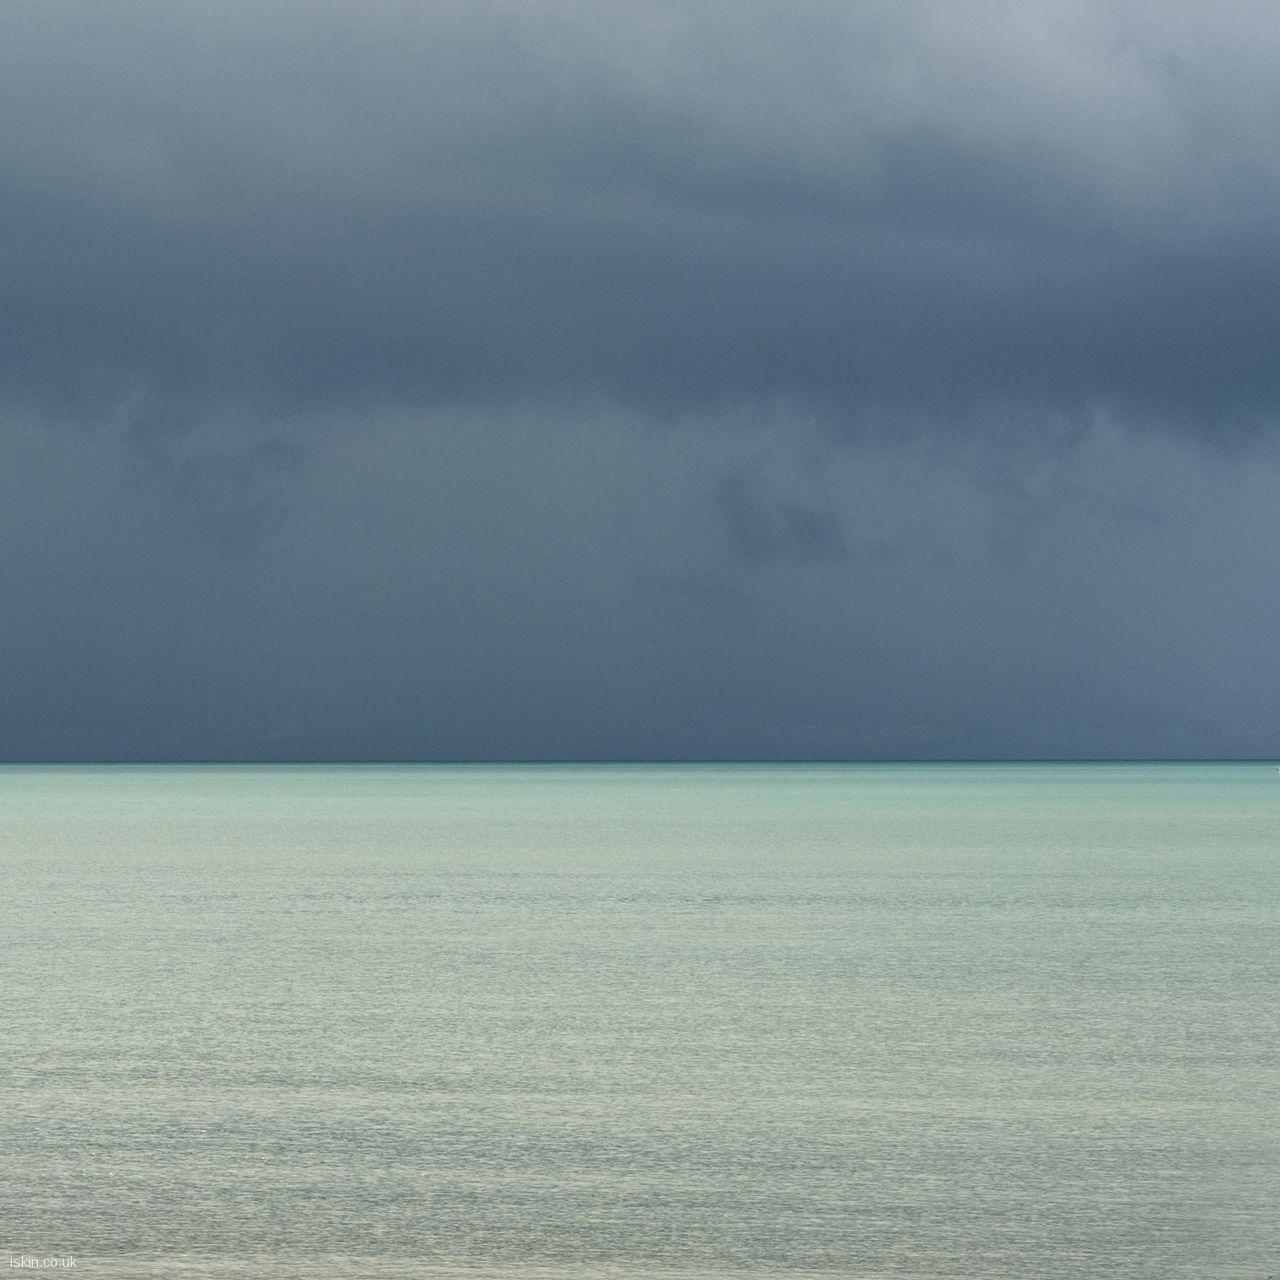 stormy ocean Desktop Wallpaper | iskin.co.uk